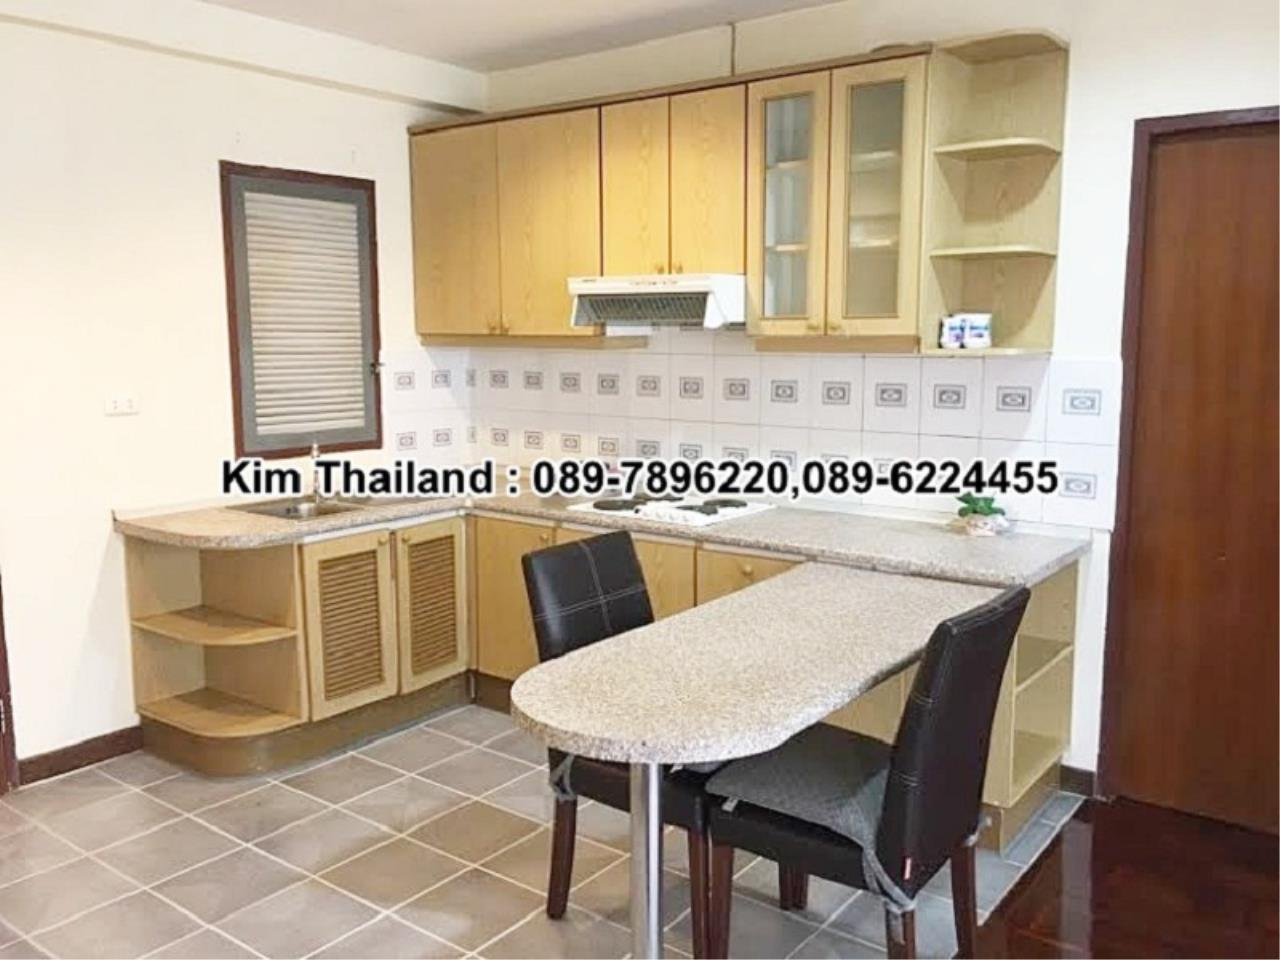 BKKcondorental Agency's For rent, Condo Saranjai Mansion. Area 63 sq.m. 1 bedroom. Rent 20,000baht/month 6